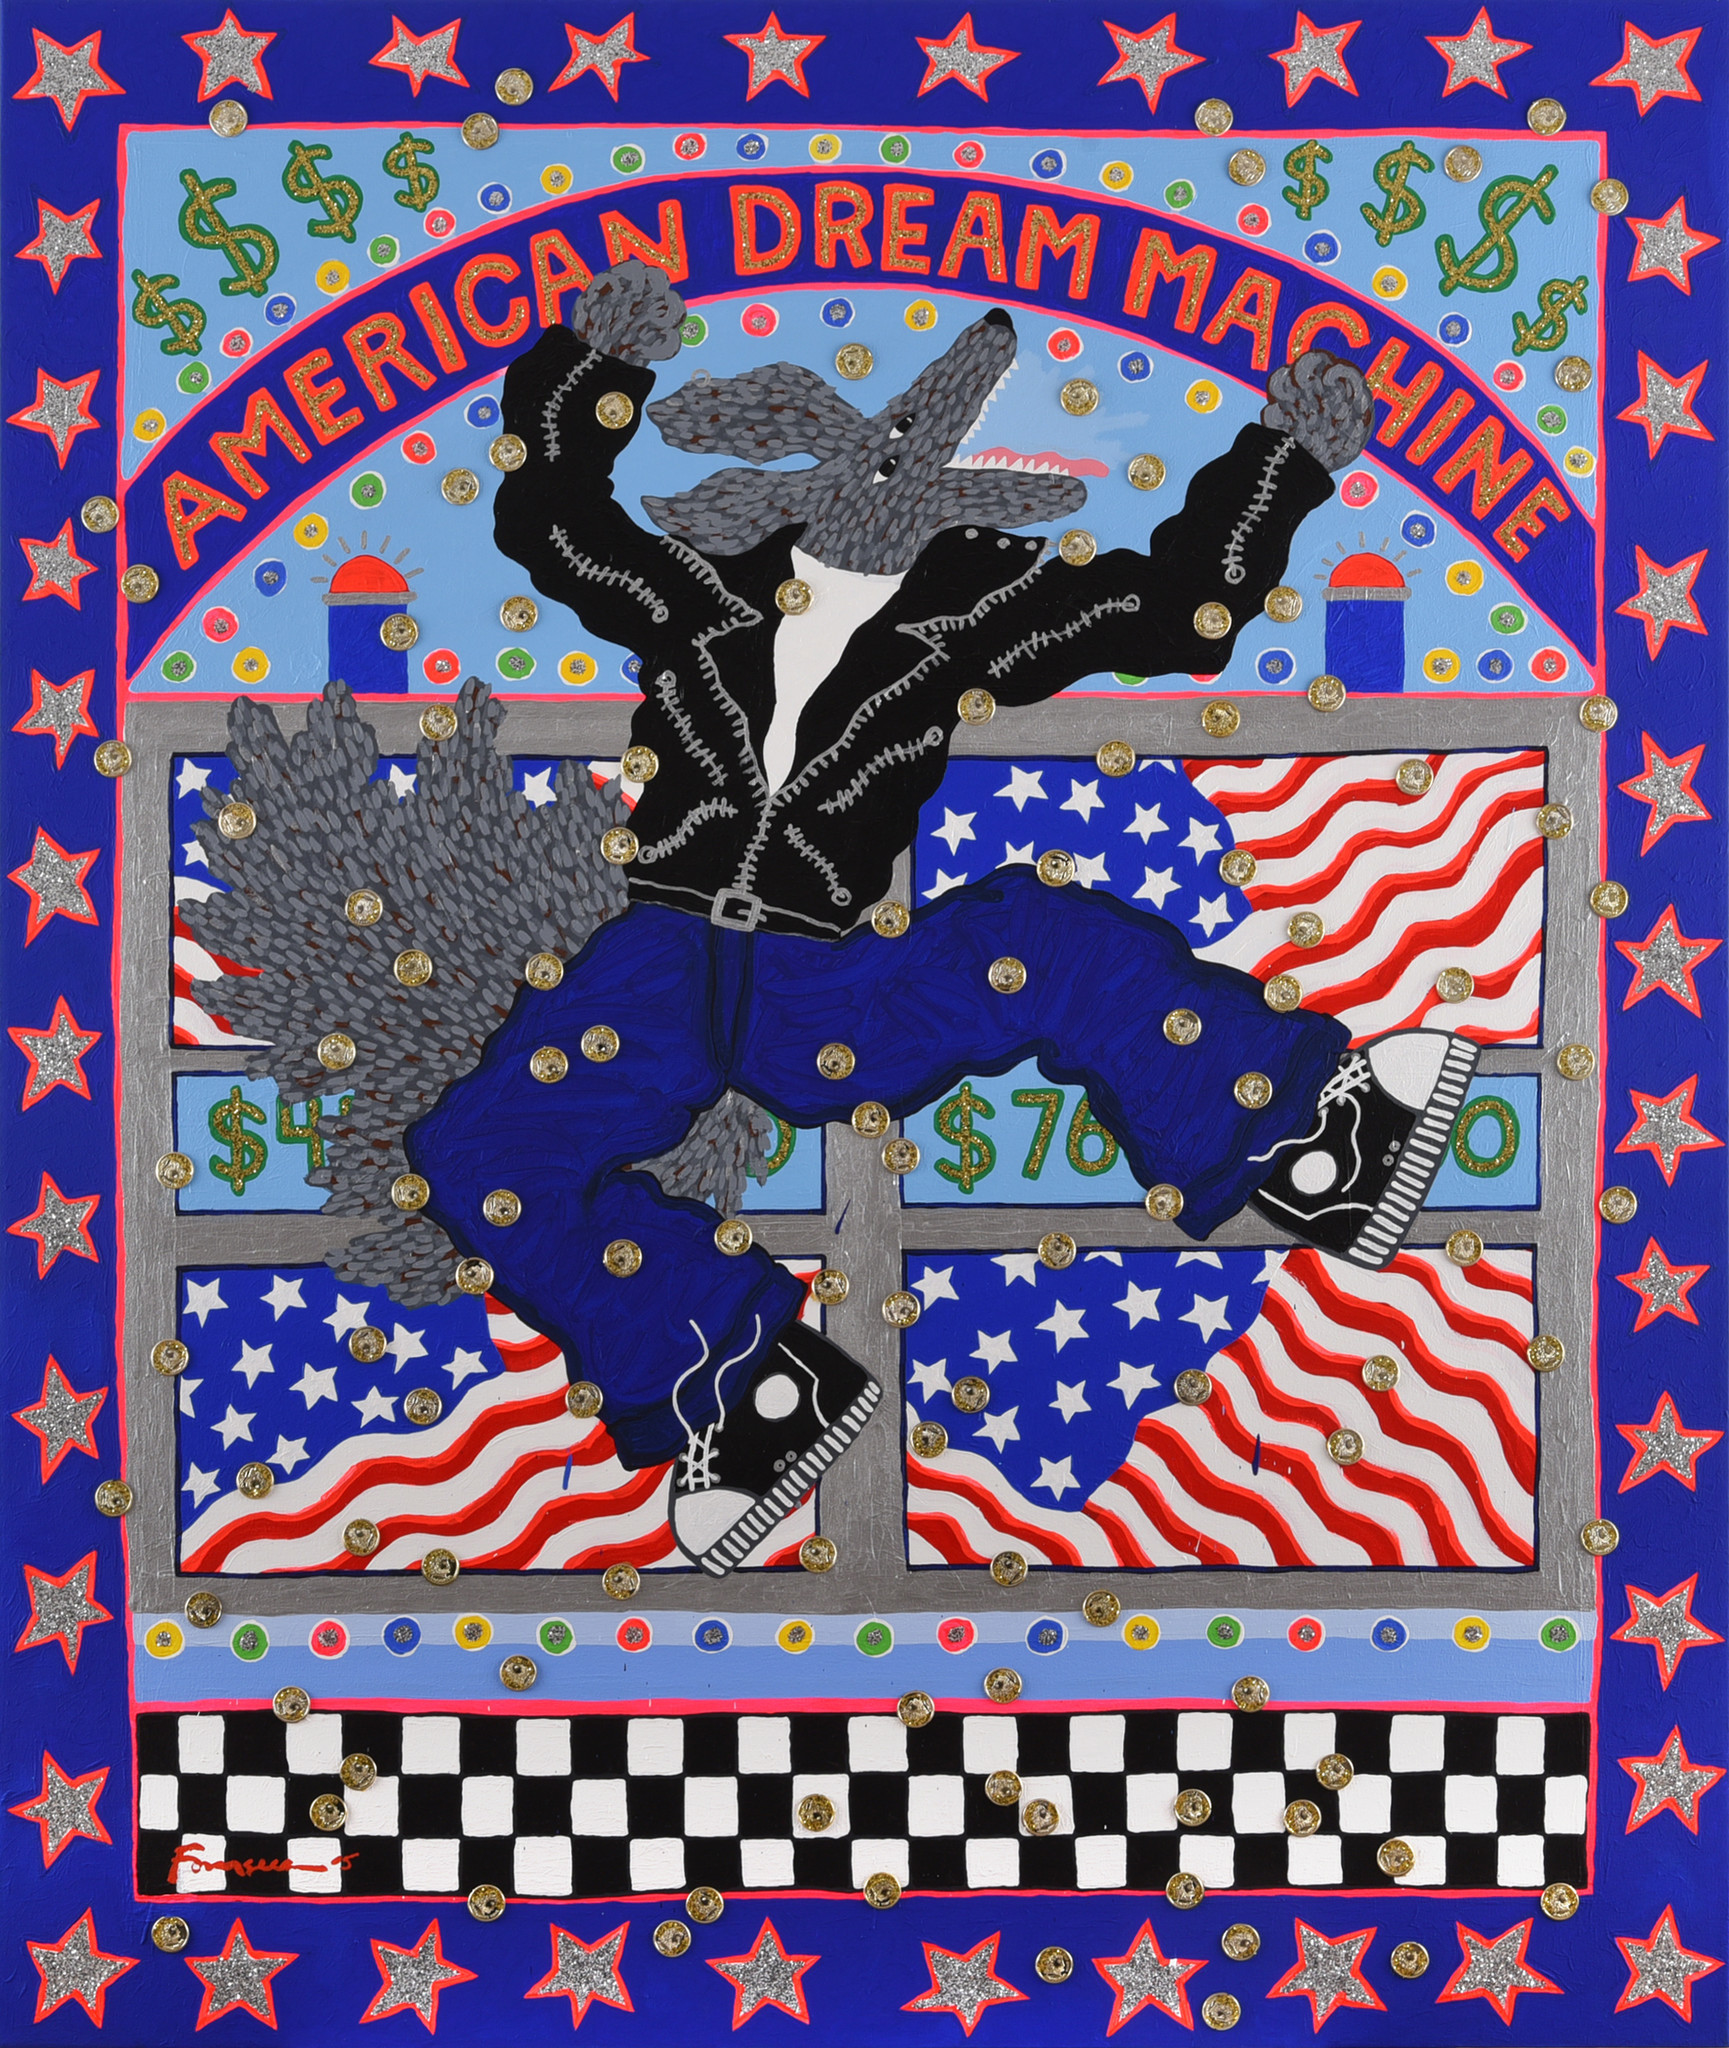 """American Dream Machine,"" 2005. Mixed media on paper."